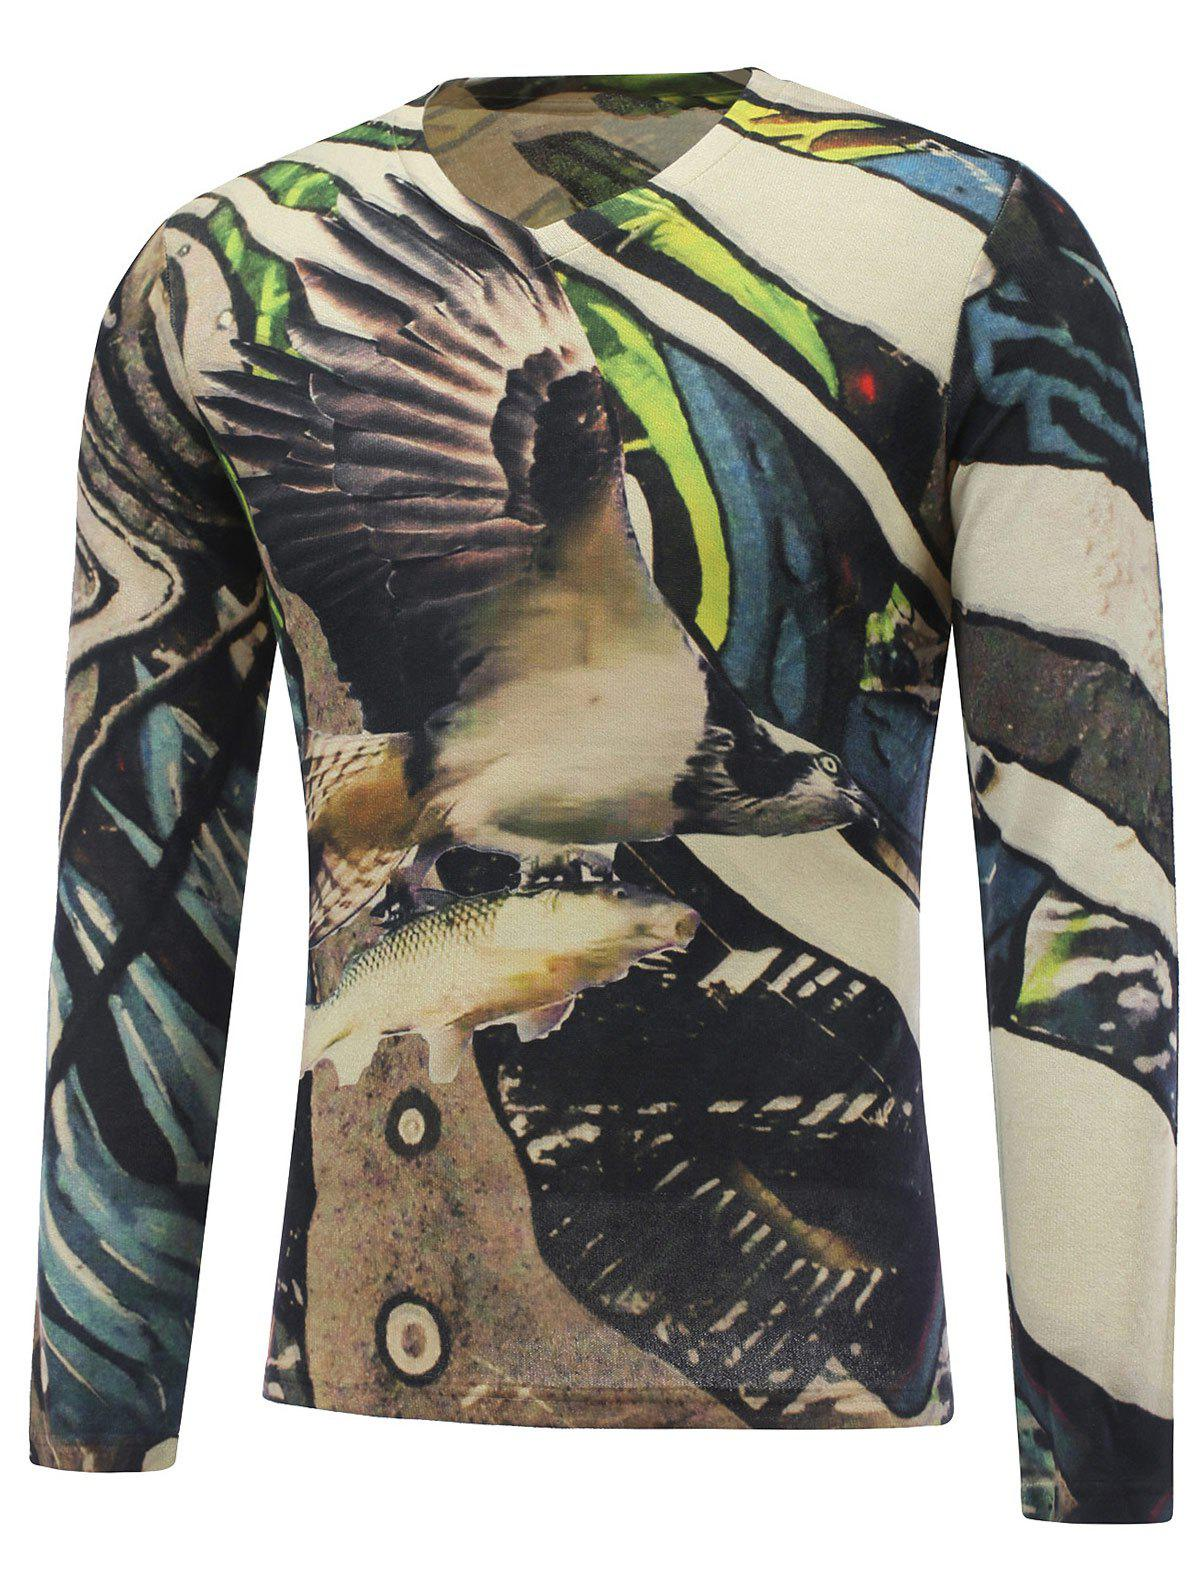 3D Animal Printed Long Sleeve V Neck T-Shirt - COLORMIX 3XL